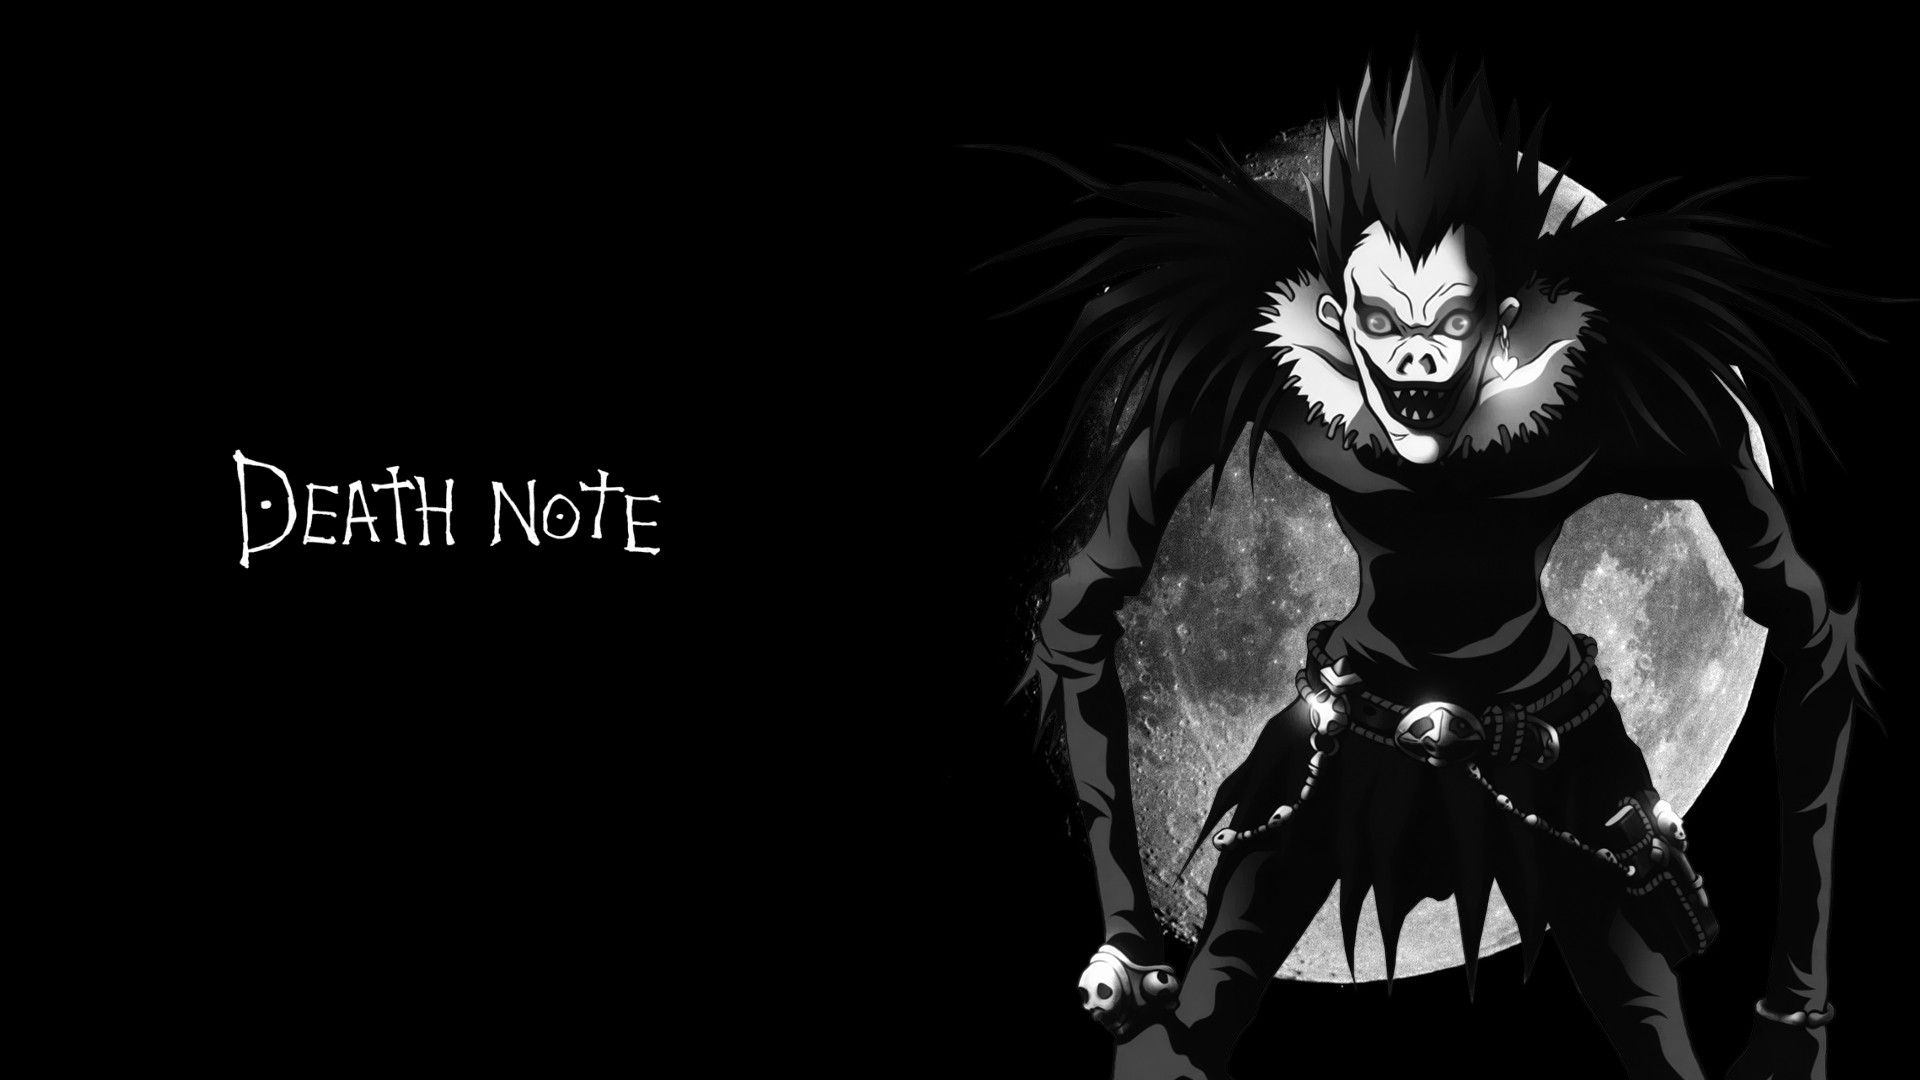 Ryuk Death Note Iphone Wallpapers Top Free Ryuk Death Note Iphone